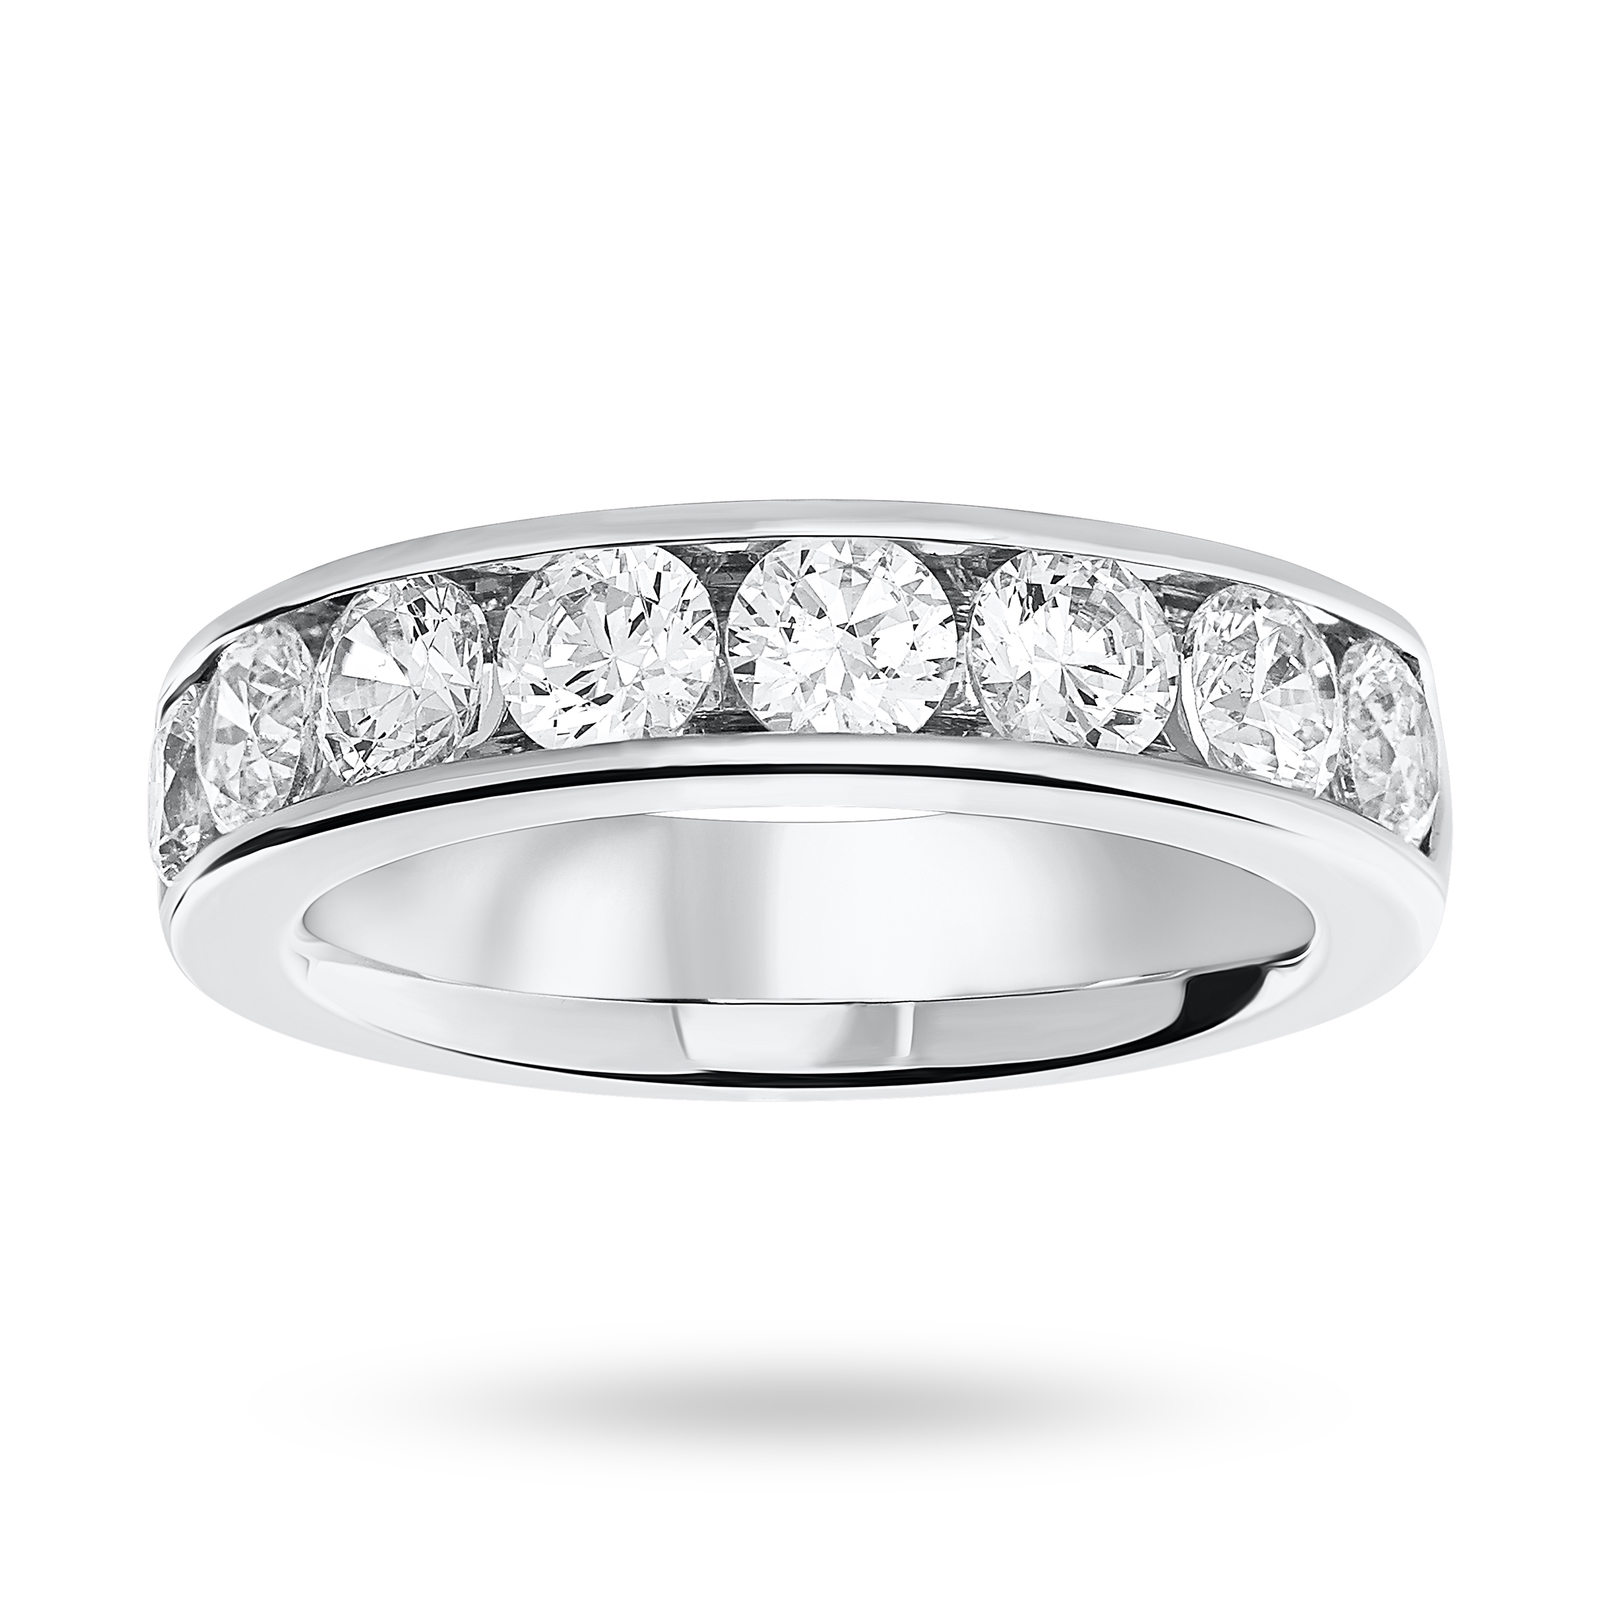 9 Carat White Gold 1.85 Carat Brilliant Cut Half Eternity Ring